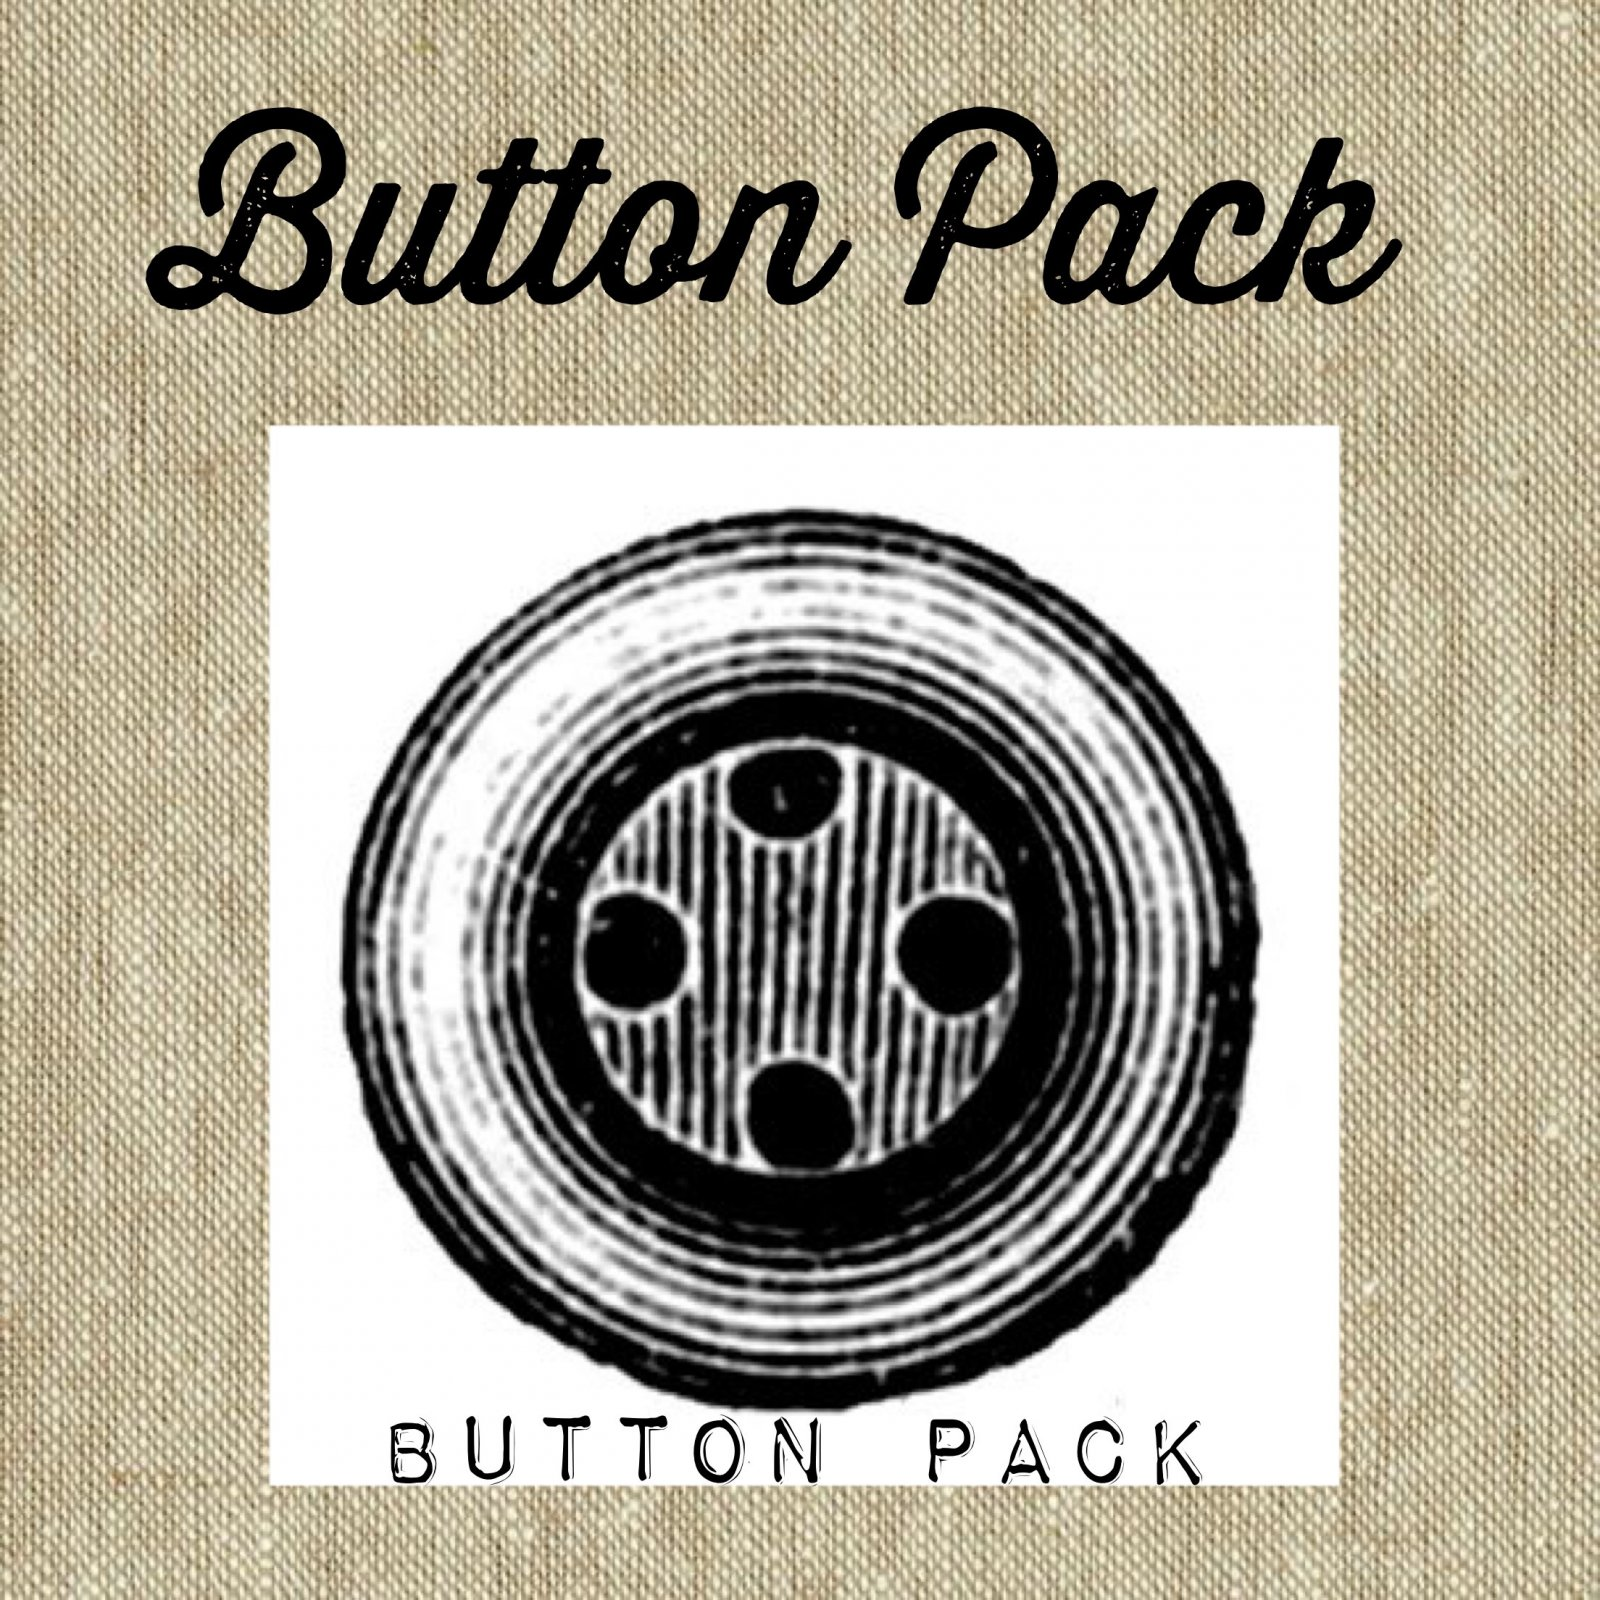 Buttermilk Basin's Vintage Vibe * Knee Hugger Elf Runner Button Pack